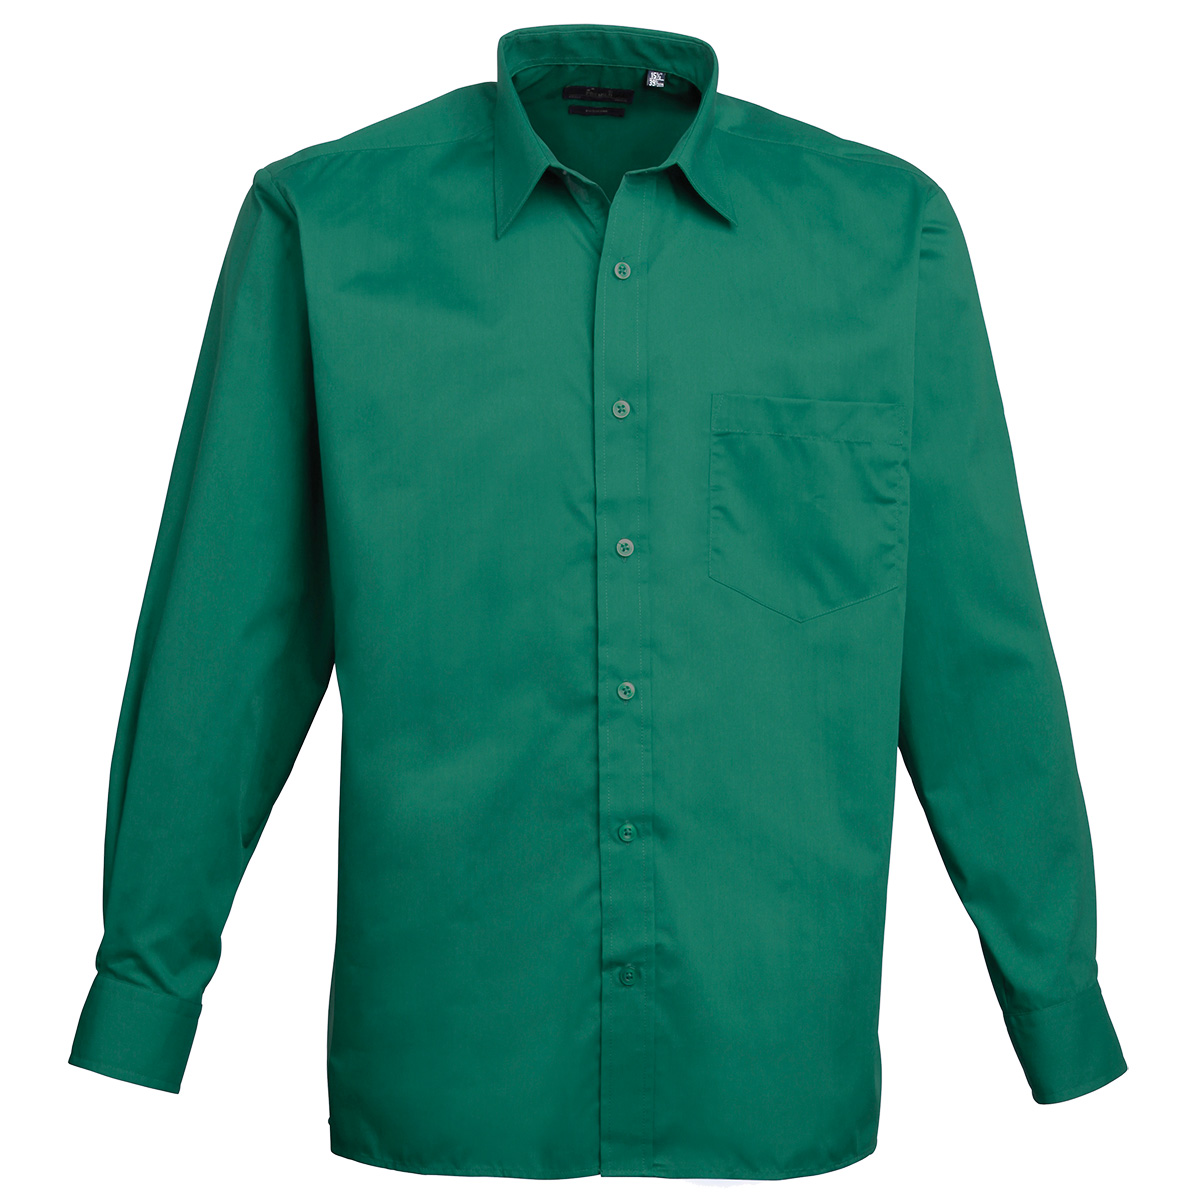 Men's Poplin Long Sleeve Shirt - Emerald Green - Chogou